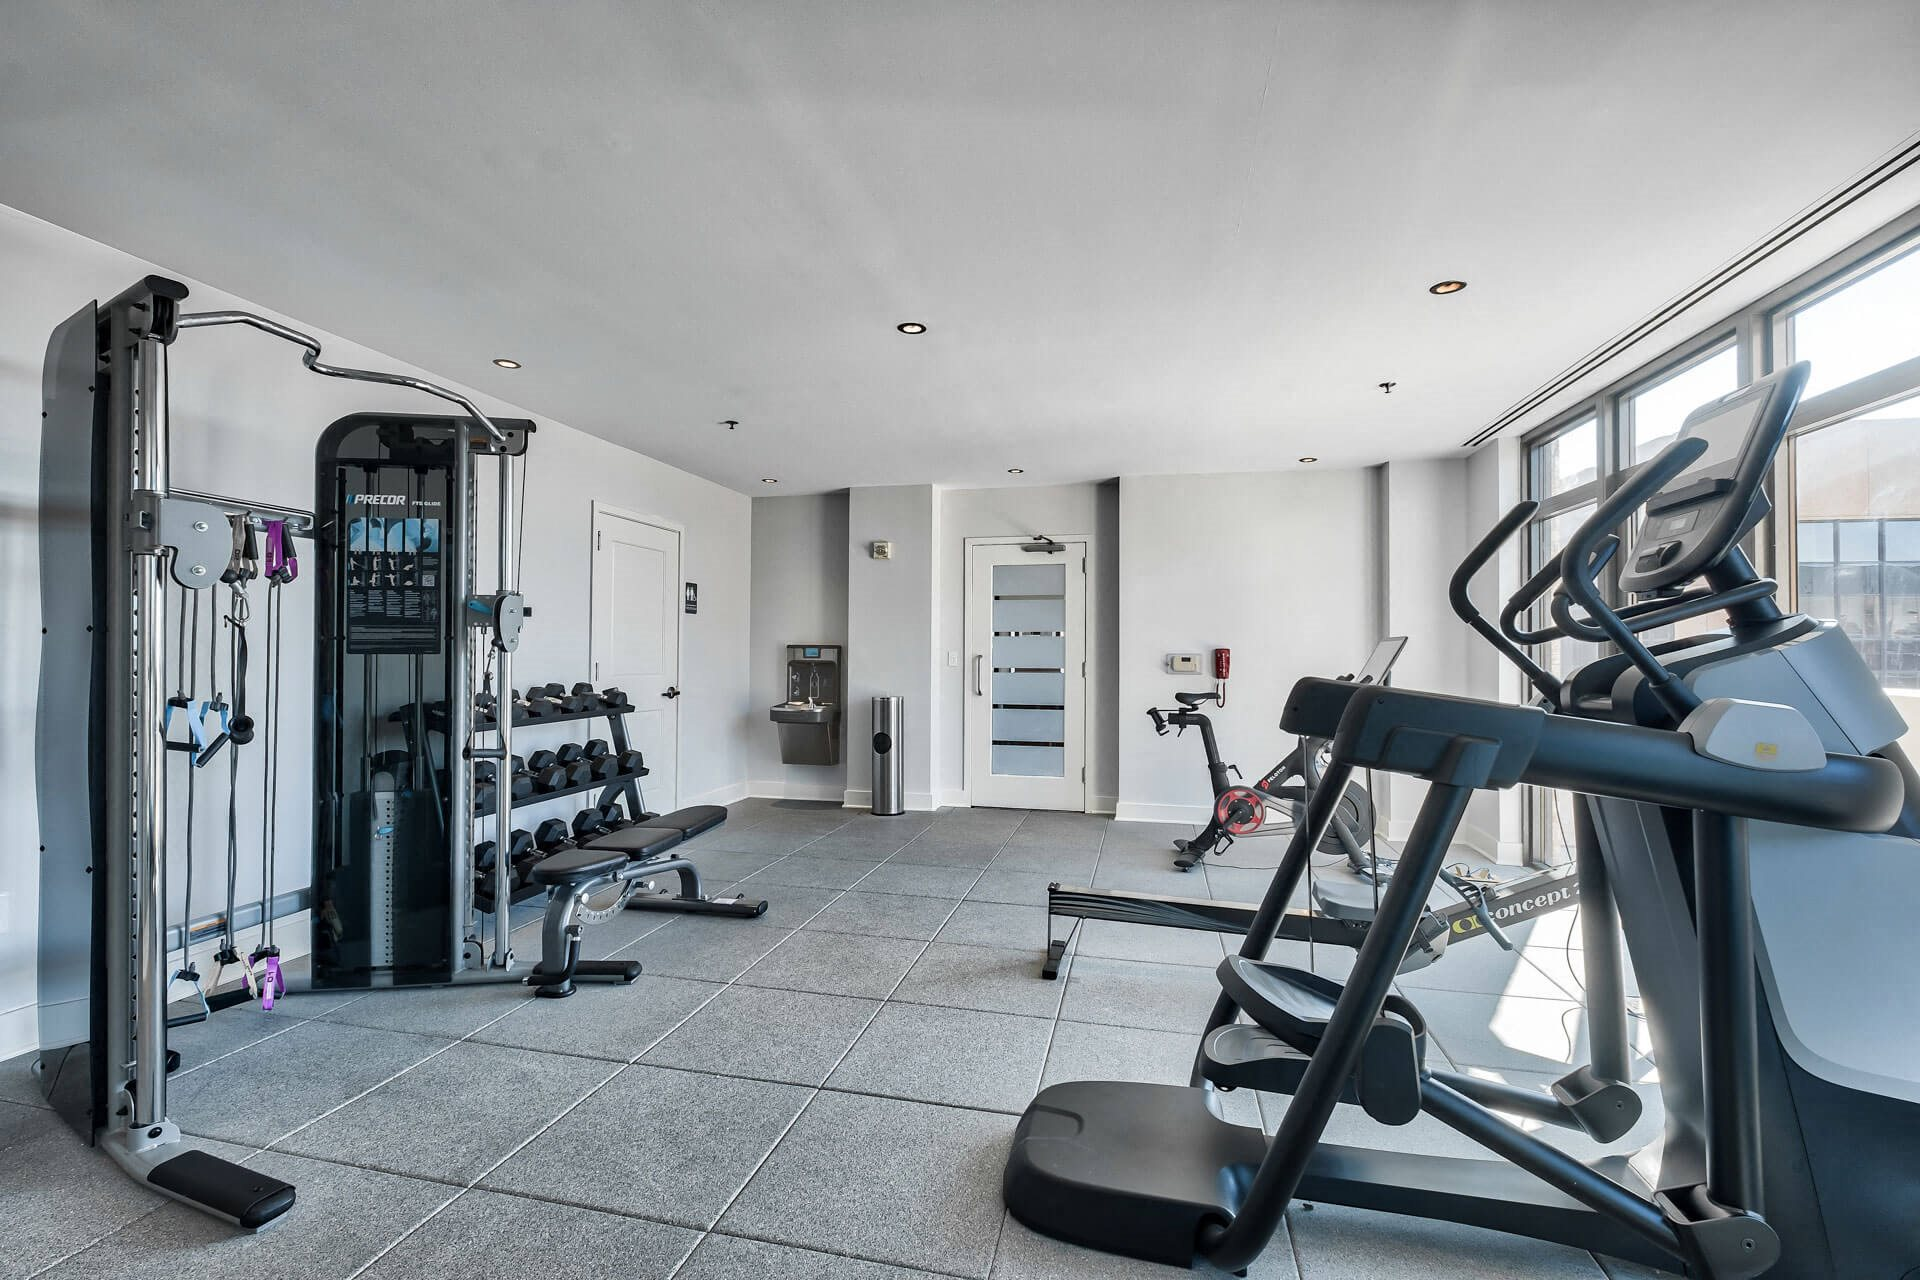 Free Weights And Cardio Equipment at Halstead Tower by Windsor, Alexandria, Virginia